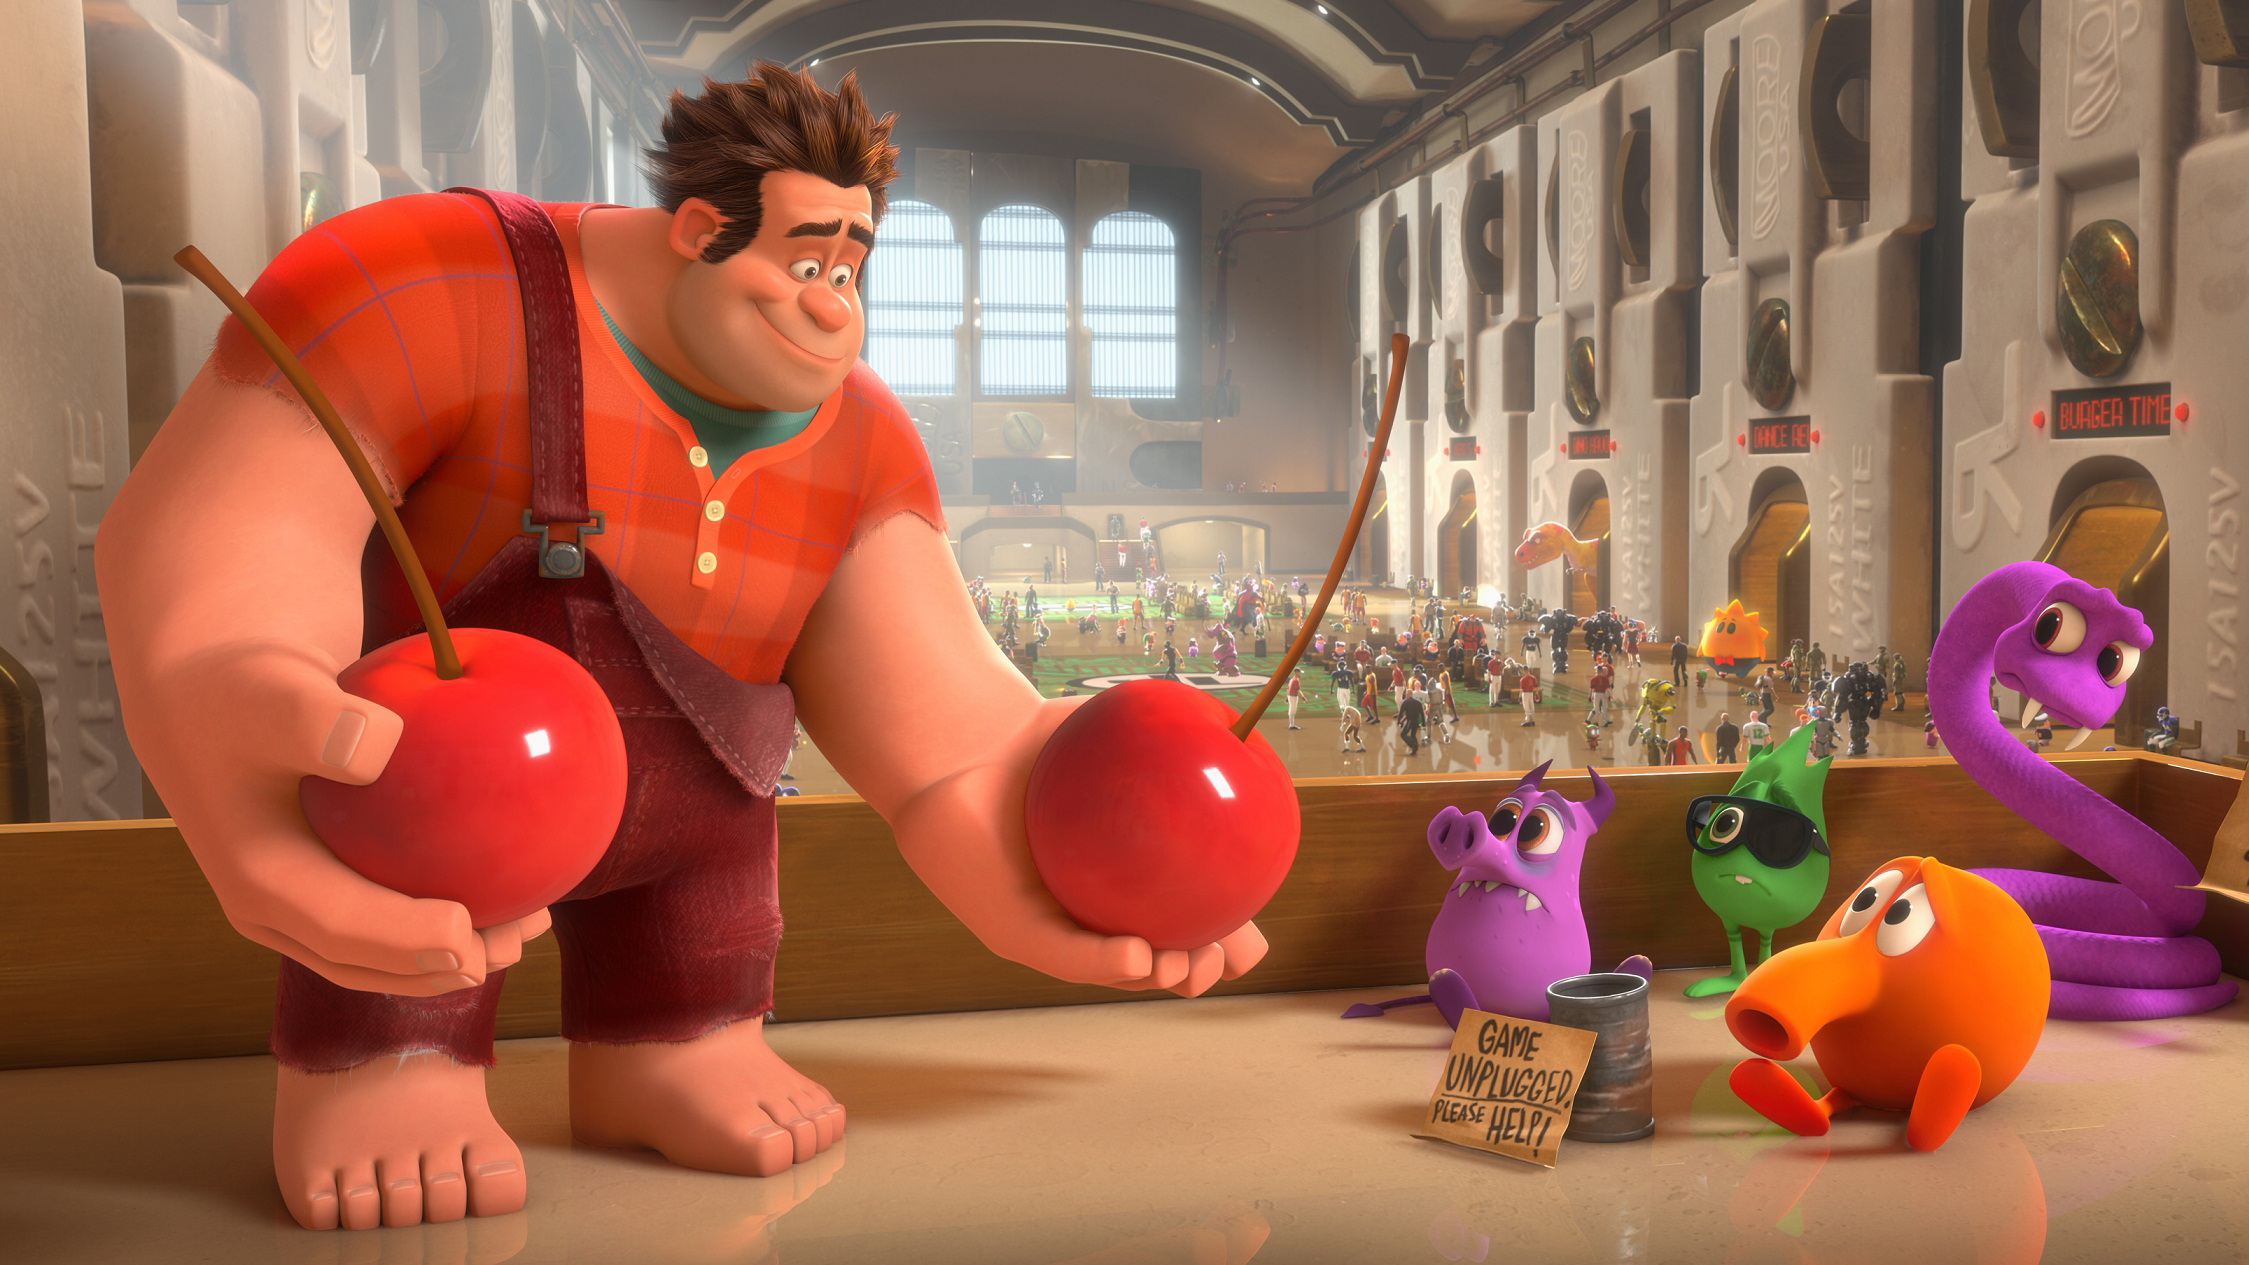 Disney Released A New Year-Themed Teaser For 'Wreck-It Ralph 2'